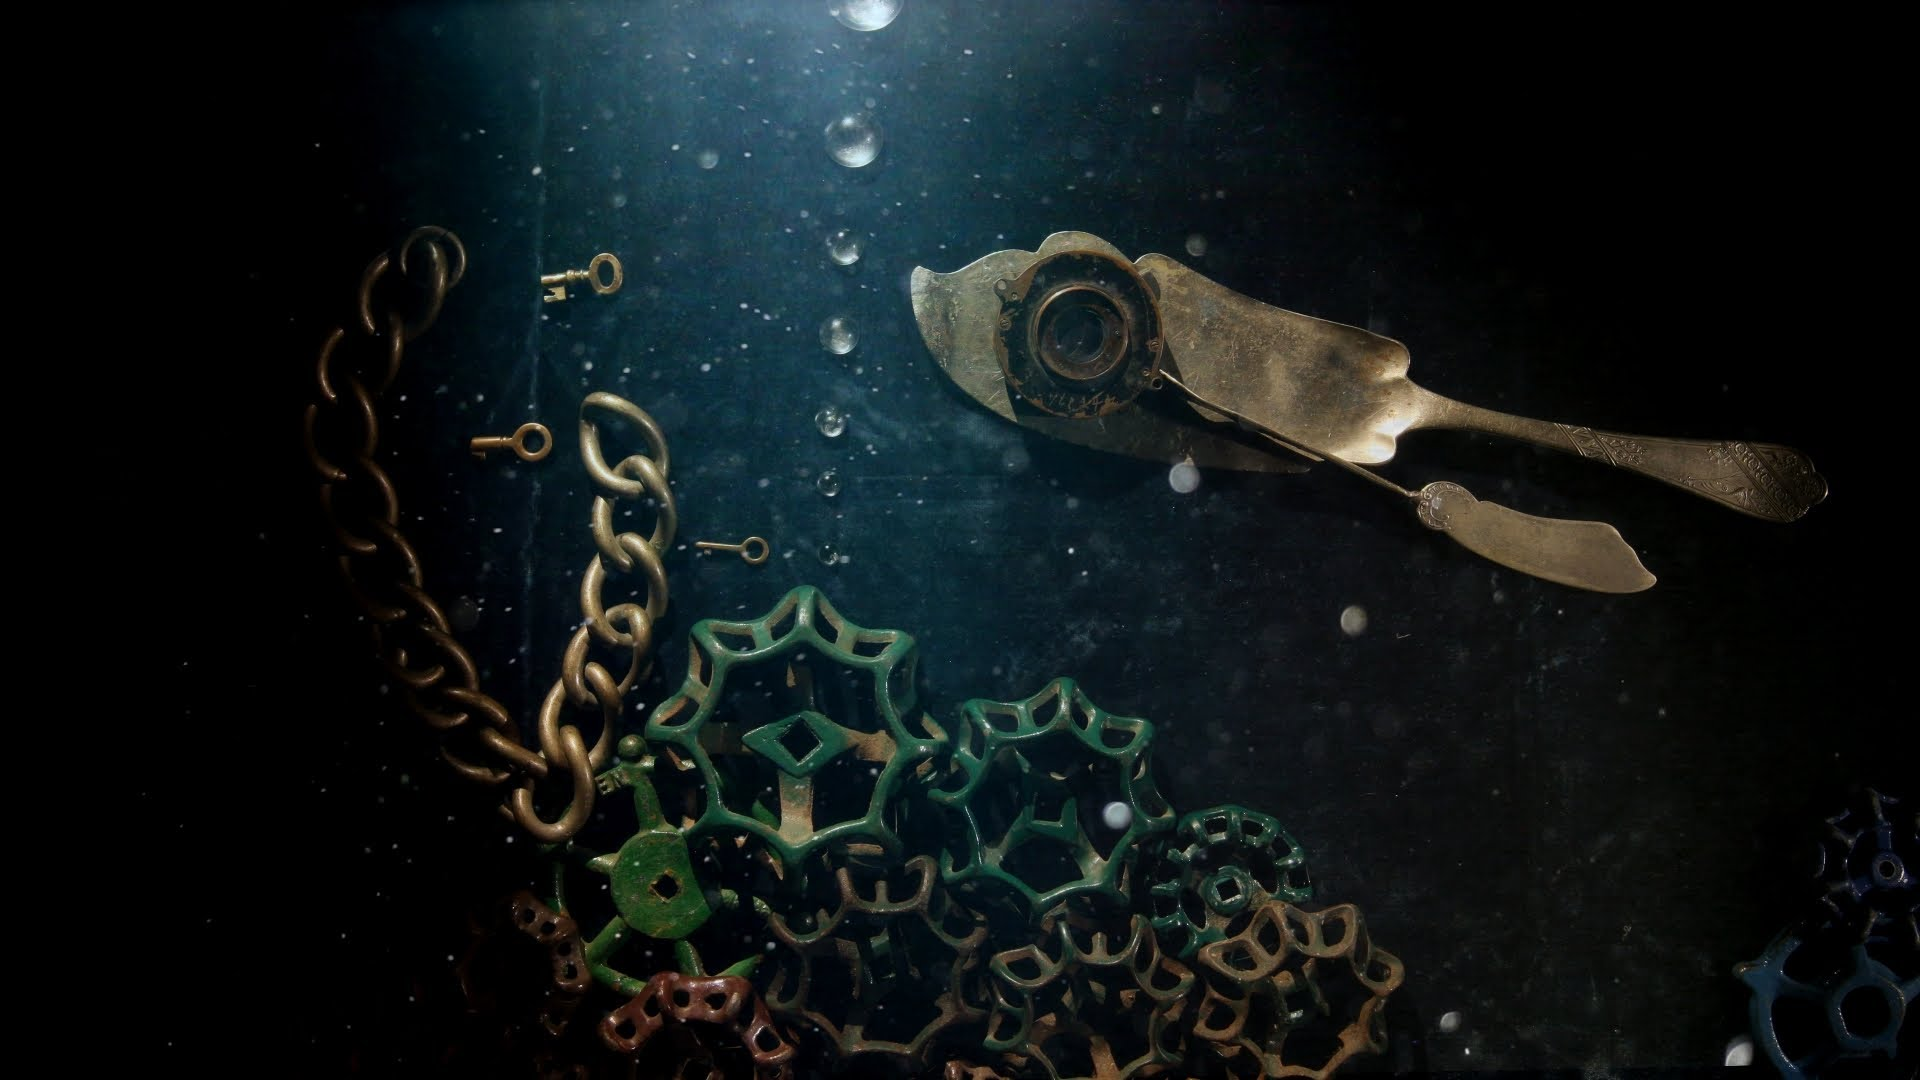 Stop motion of ocean creatures made from man-made objects